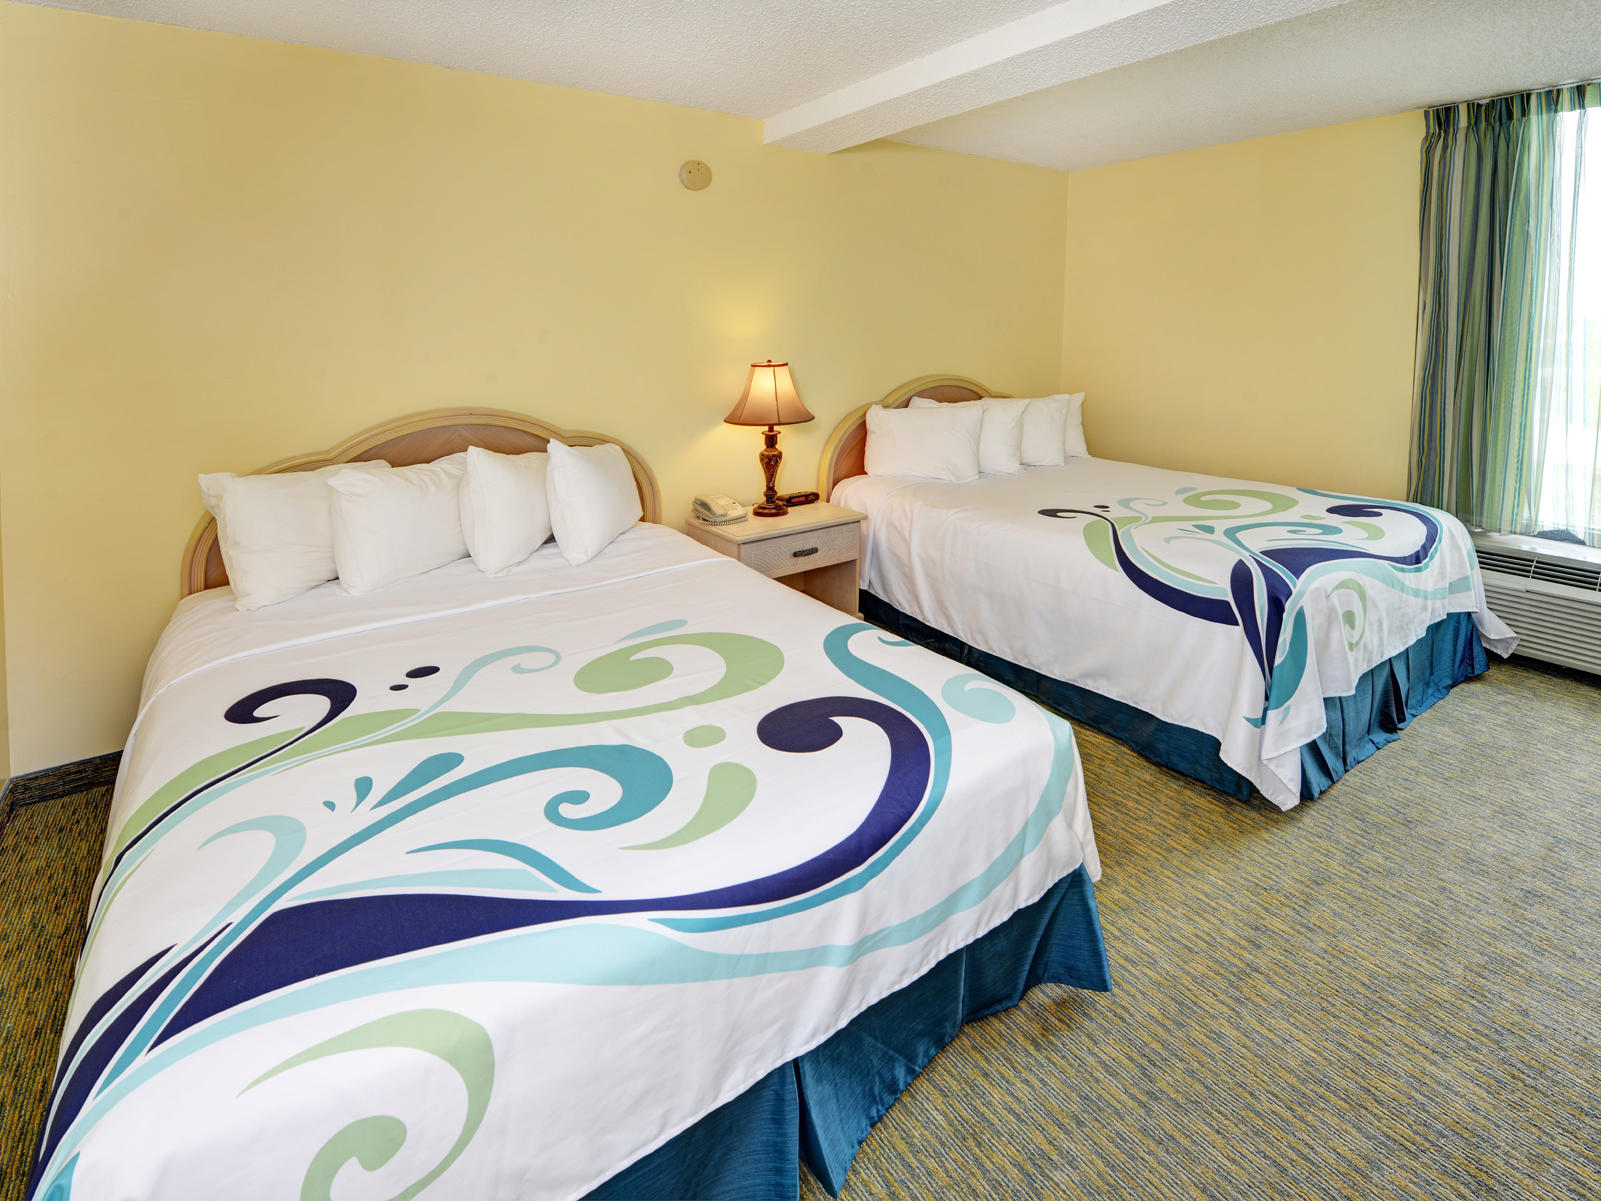 Hotel room with two double beds.